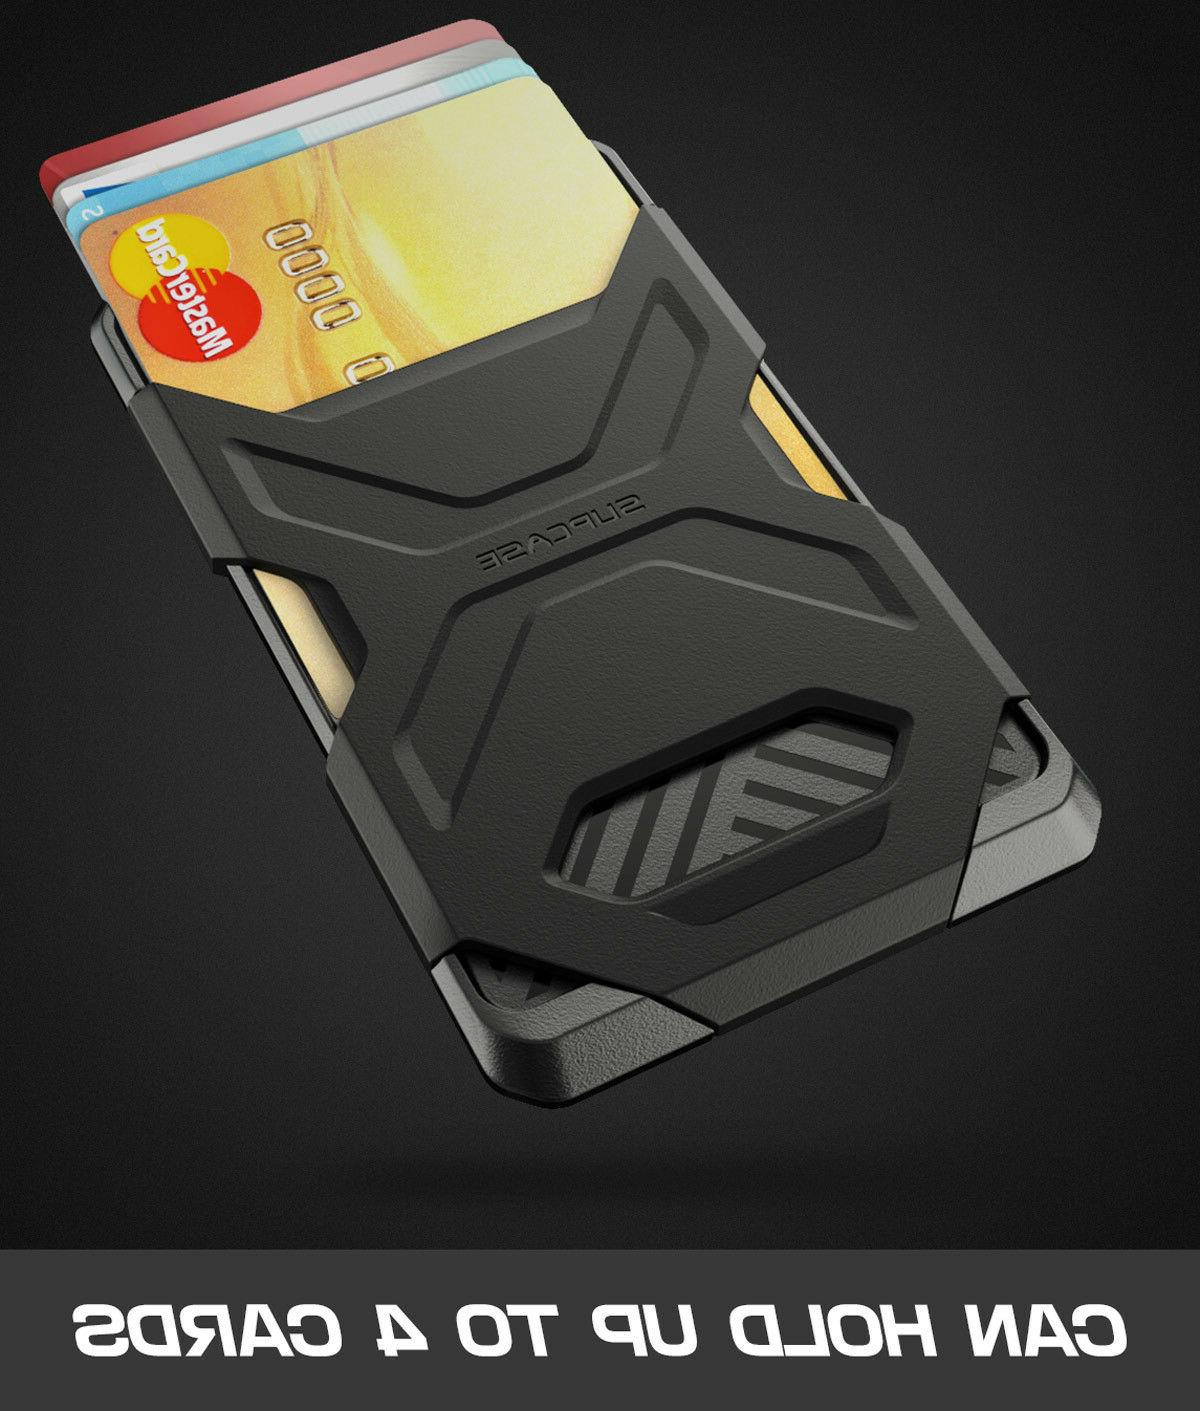 SUPCASE Adhesive Wallet, Credit Card Holder Cell Case